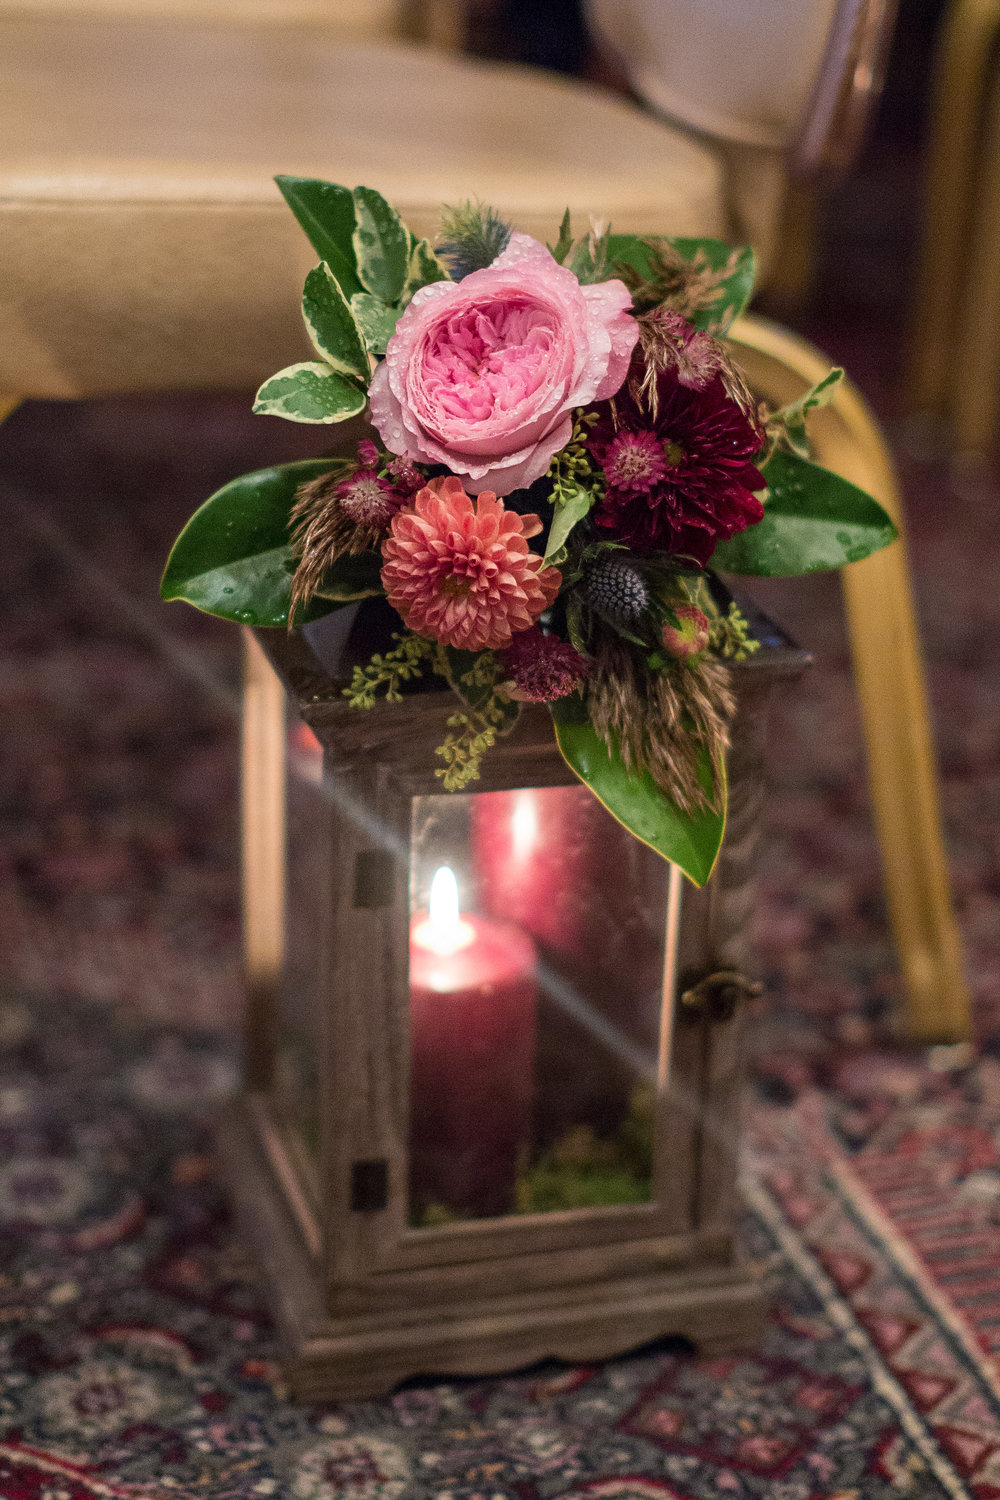 Wooden lanterns with marsala candles were made even prettier with small arrangements of garden roses, dahlias, and greenery.